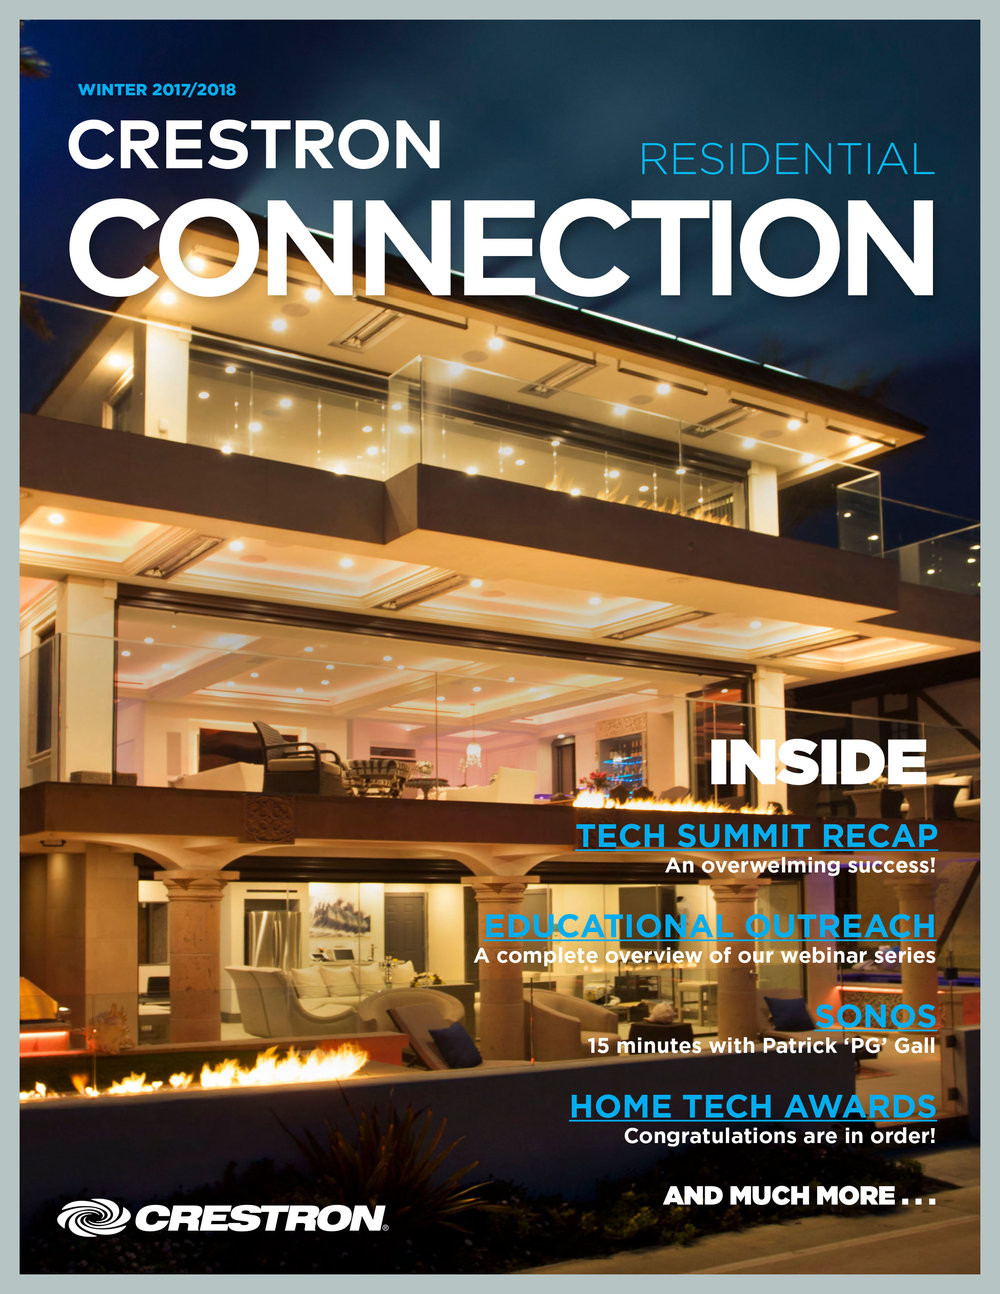 Front Page News! - Our project was chosen by Crestron to be profiled in the first edition of the Crestron Residential Connection, Winter 2017/2108.  We are humbled to share these pages with 2017 Crestron Home Tech Award Winners, and we couldn't be prouder to showcase Crestron in our 2017 Global Award Winning Integrated Home!